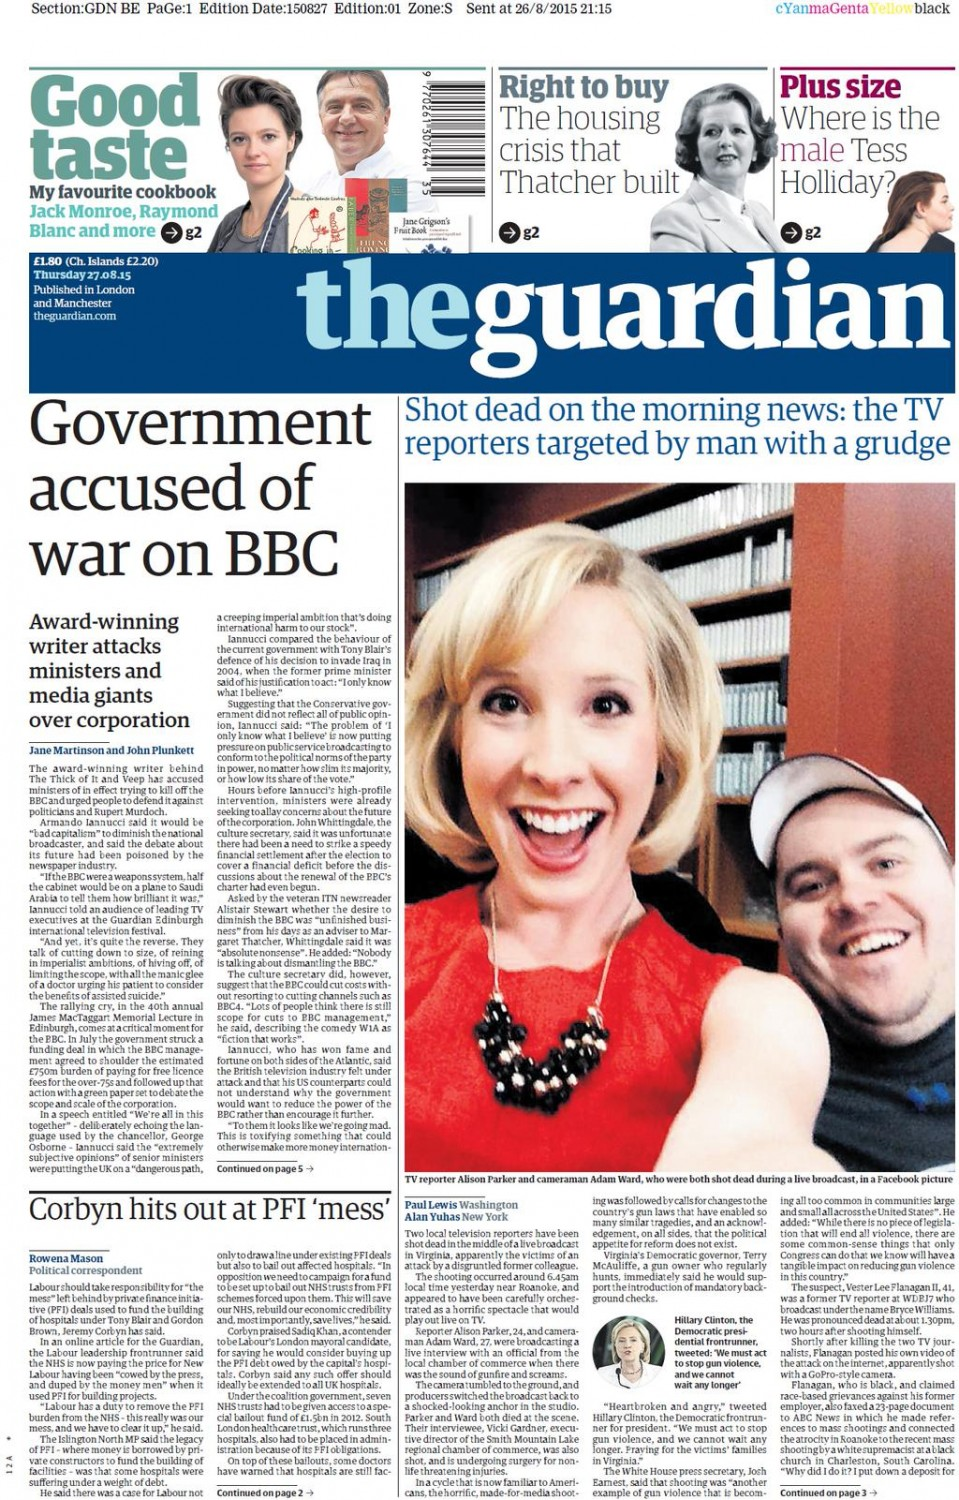 The Guardian -- Good